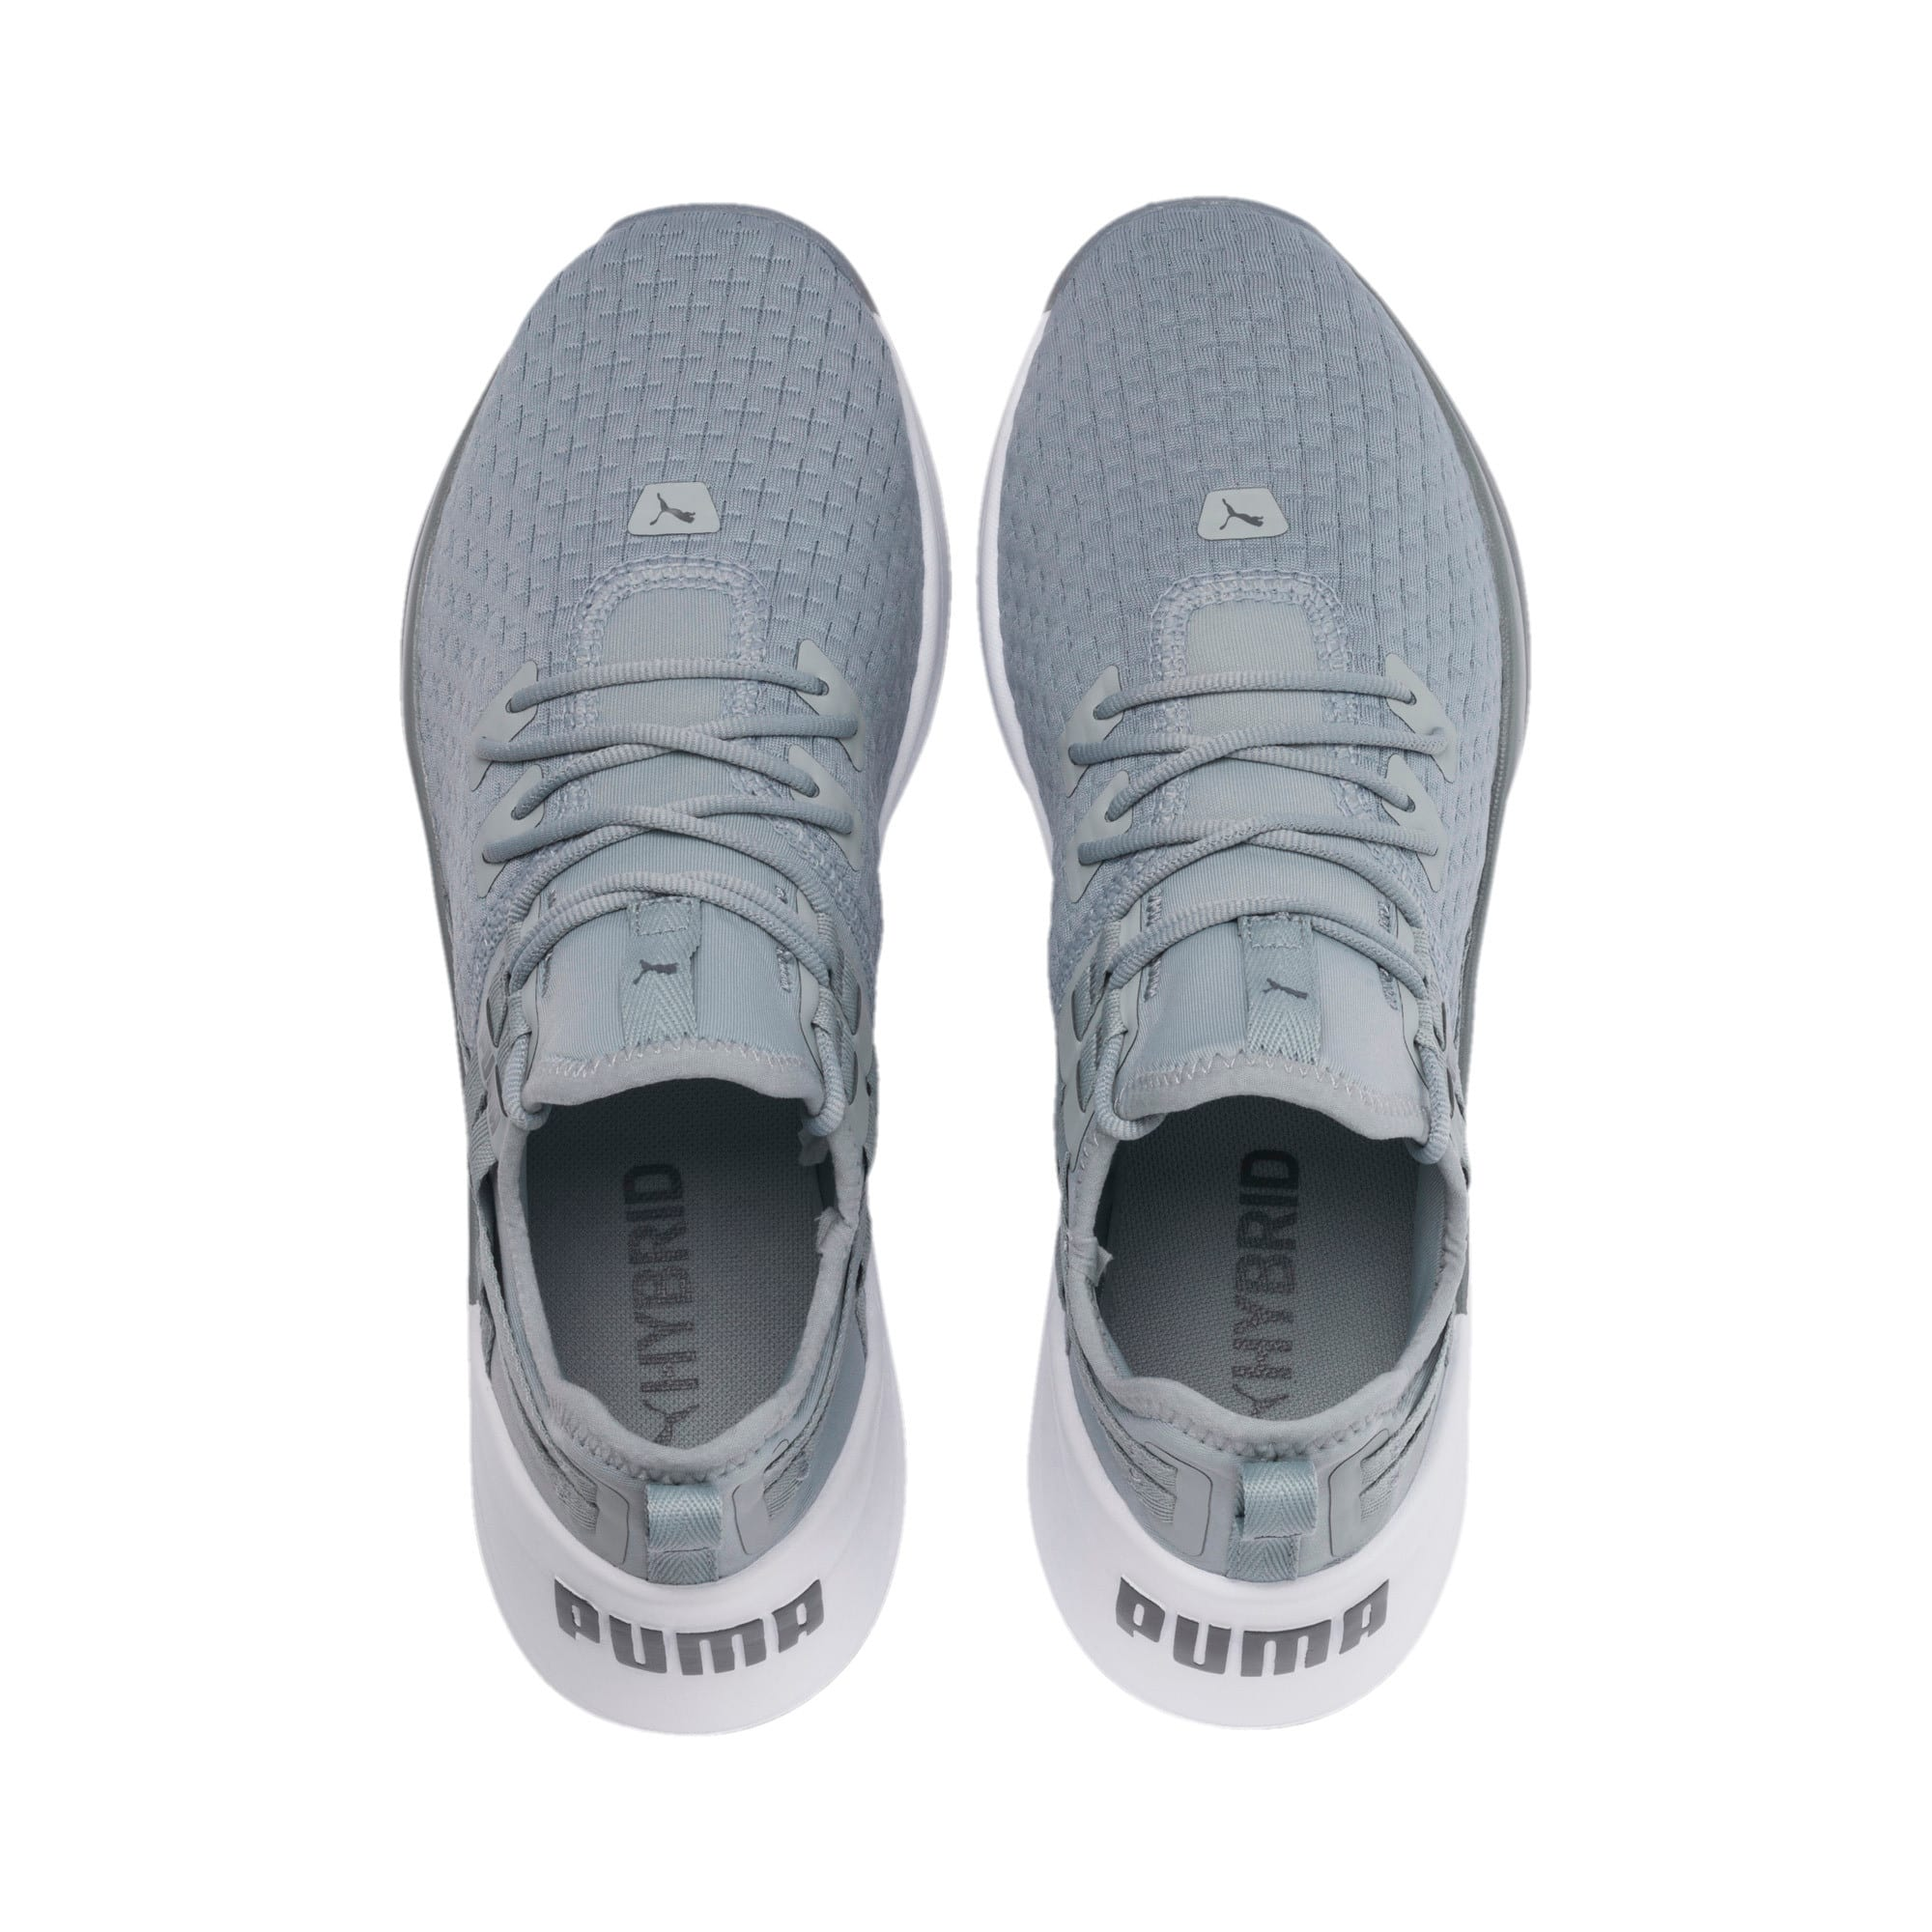 Thumbnail 6 of JAAB XT ウィメンズ, Quarry-Puma White, medium-JPN